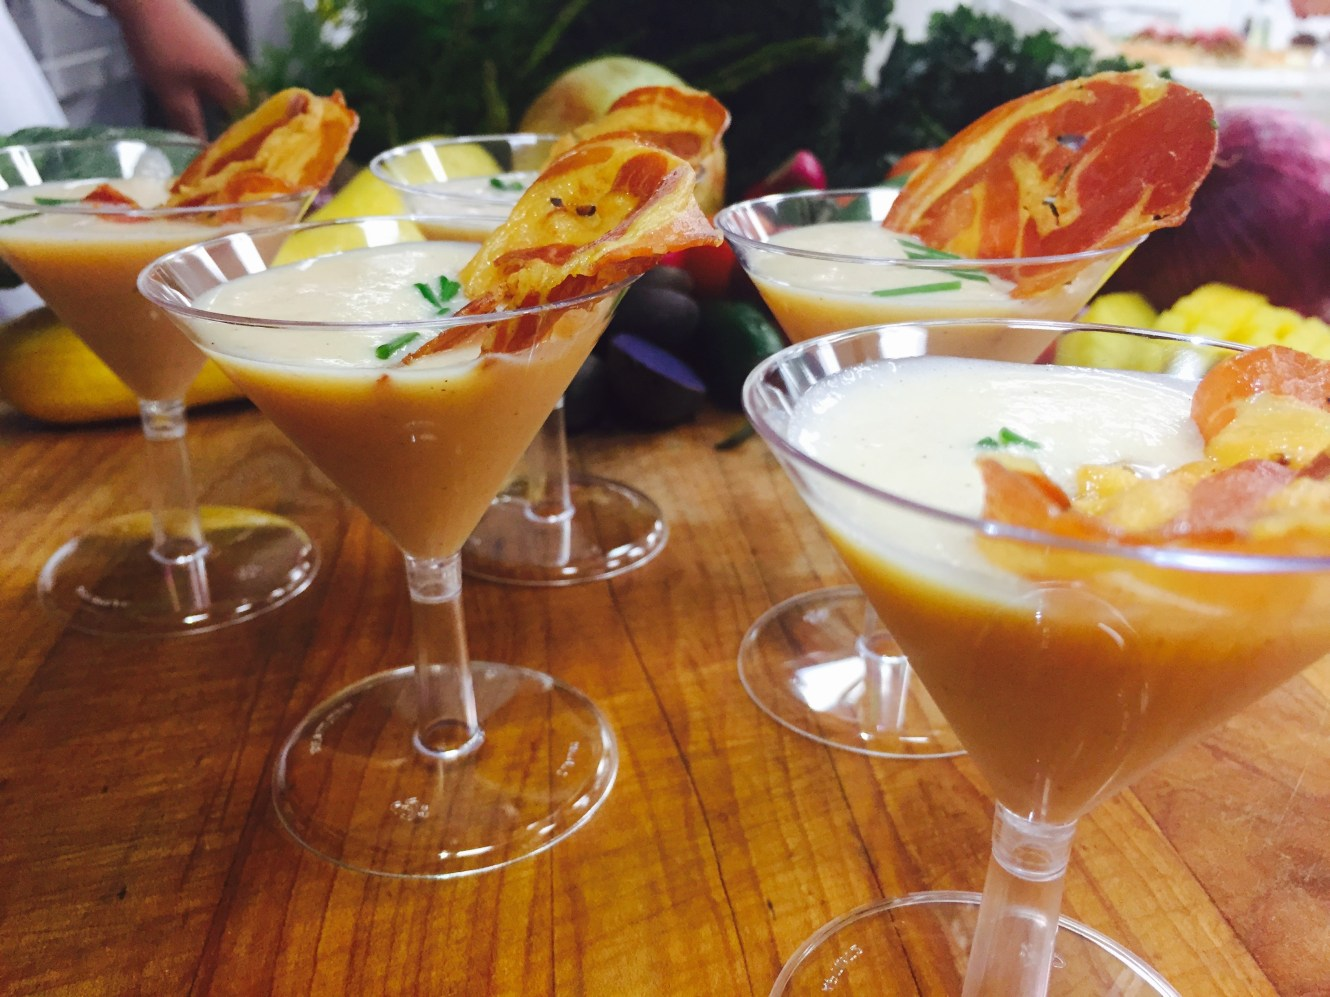 Chilled Cantaloupe Soup Shooter Topped with Crispy Prosciutto